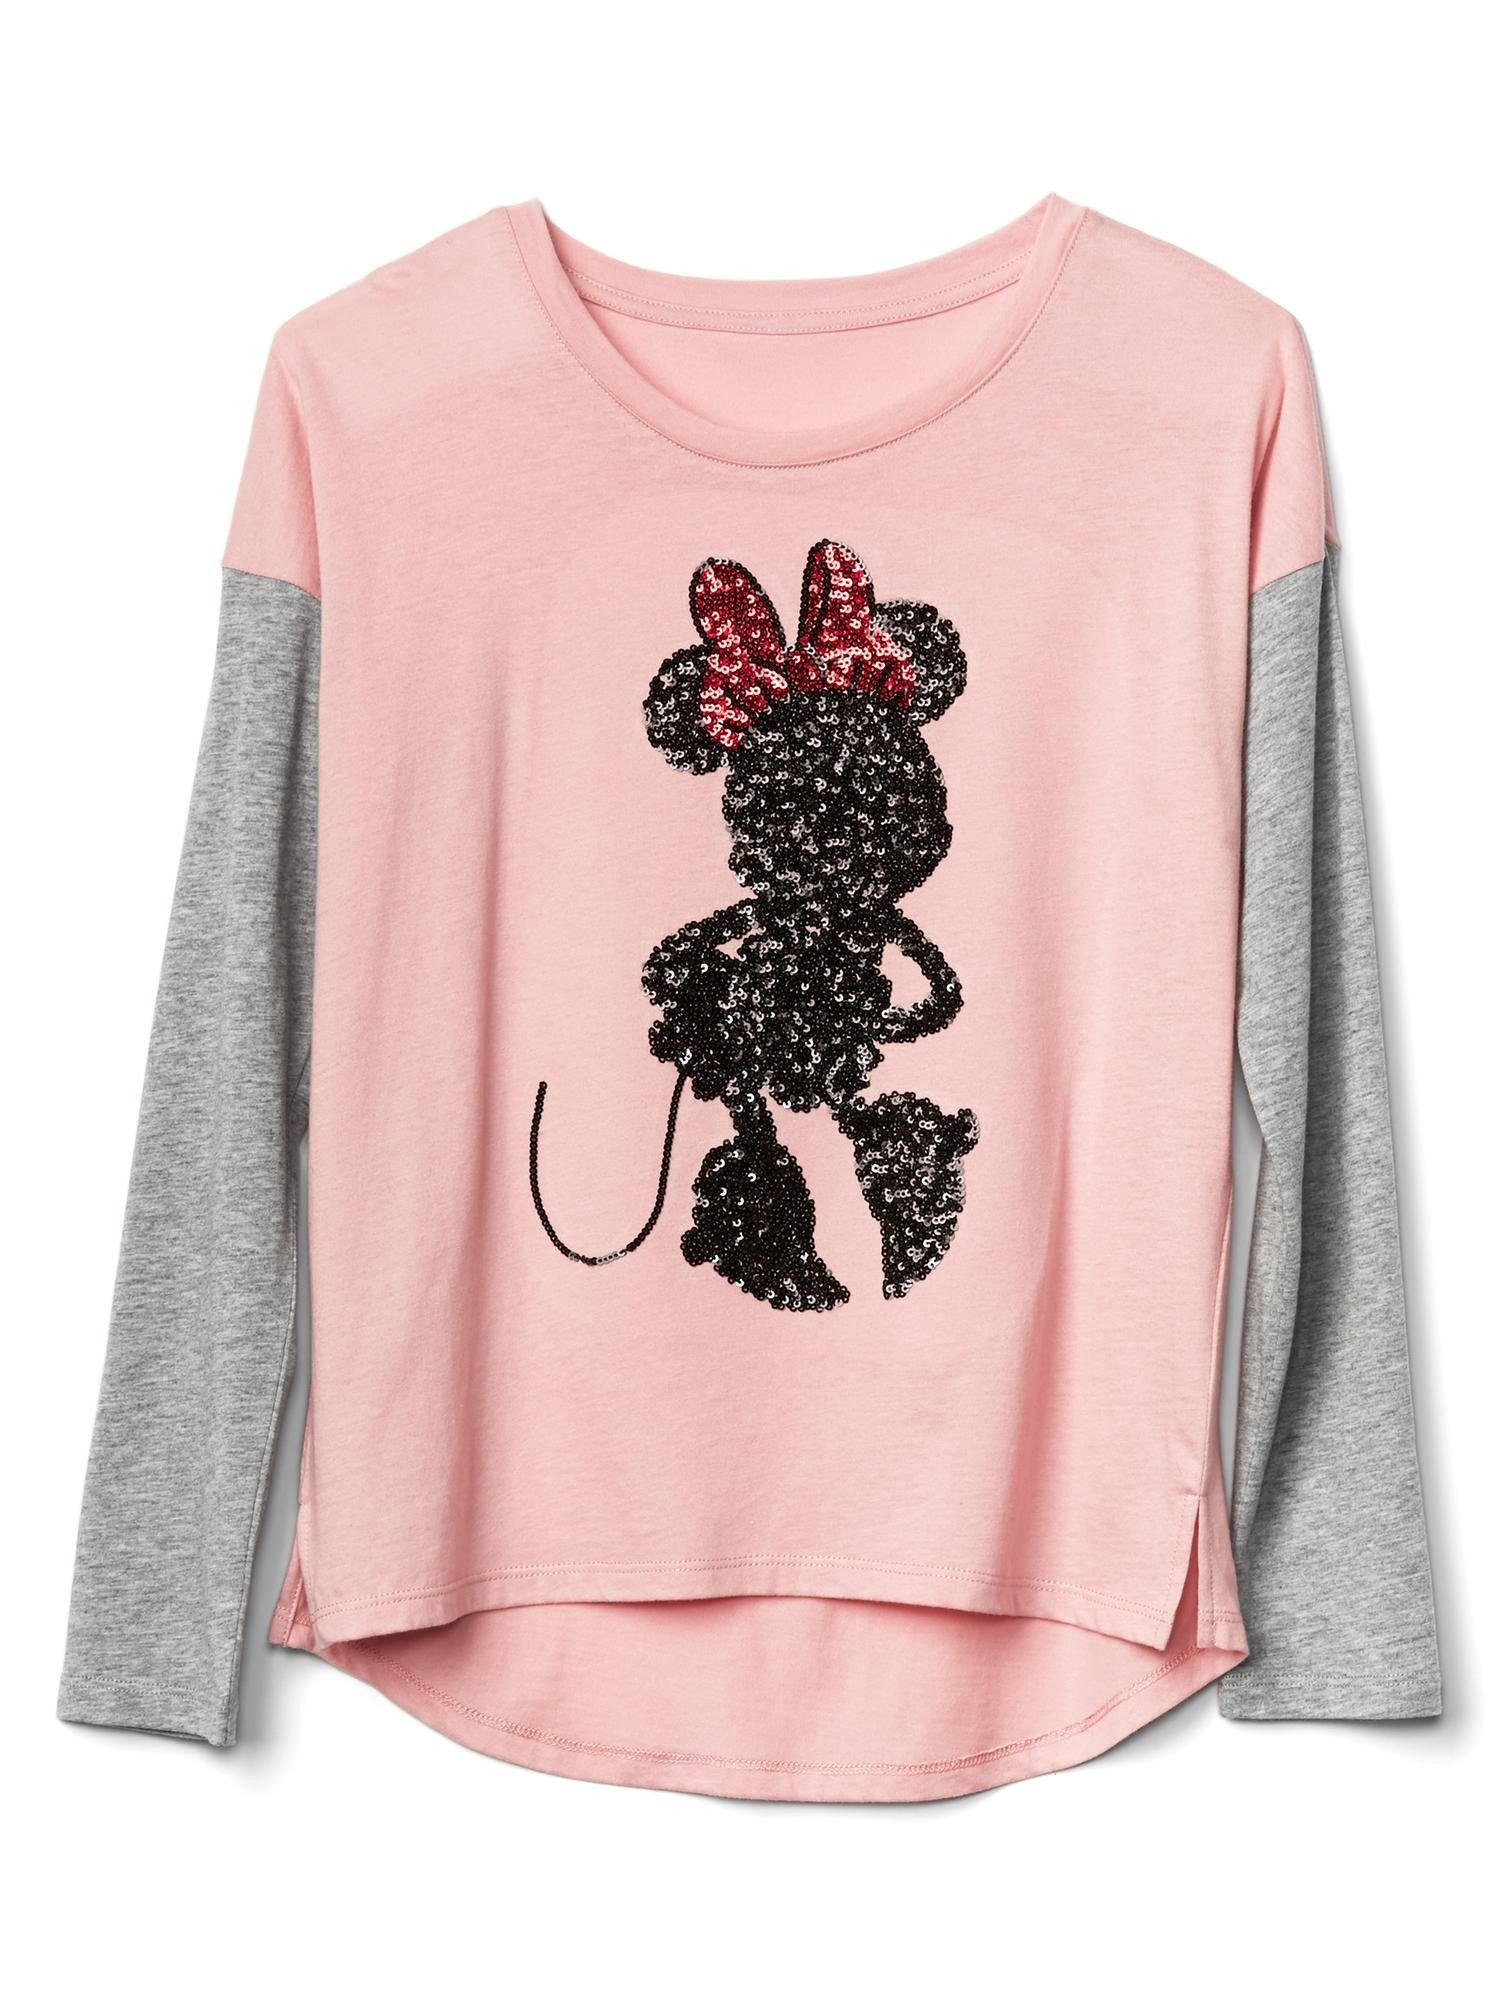 8c7edf72670c6 Kids Clothing: Girls Clothing: new arrivals. GapKids | Disney Minnie Mouse t -shirt